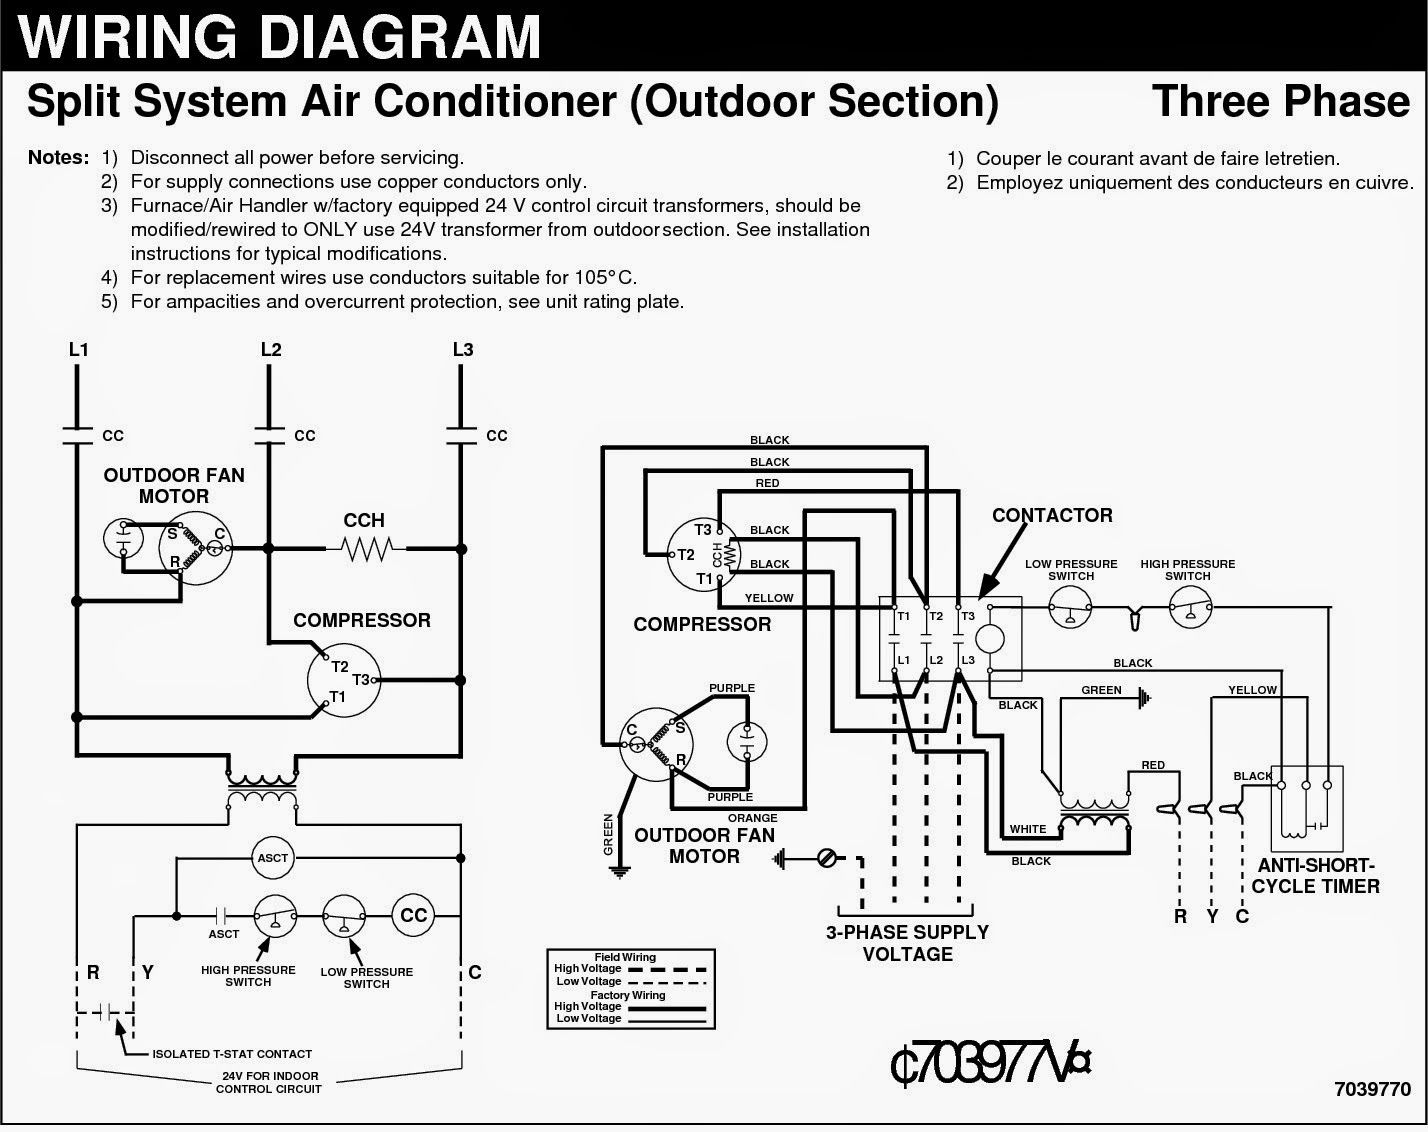 3 Phase Split Ac Wiring Diagram - Wiring Diagrams Show on